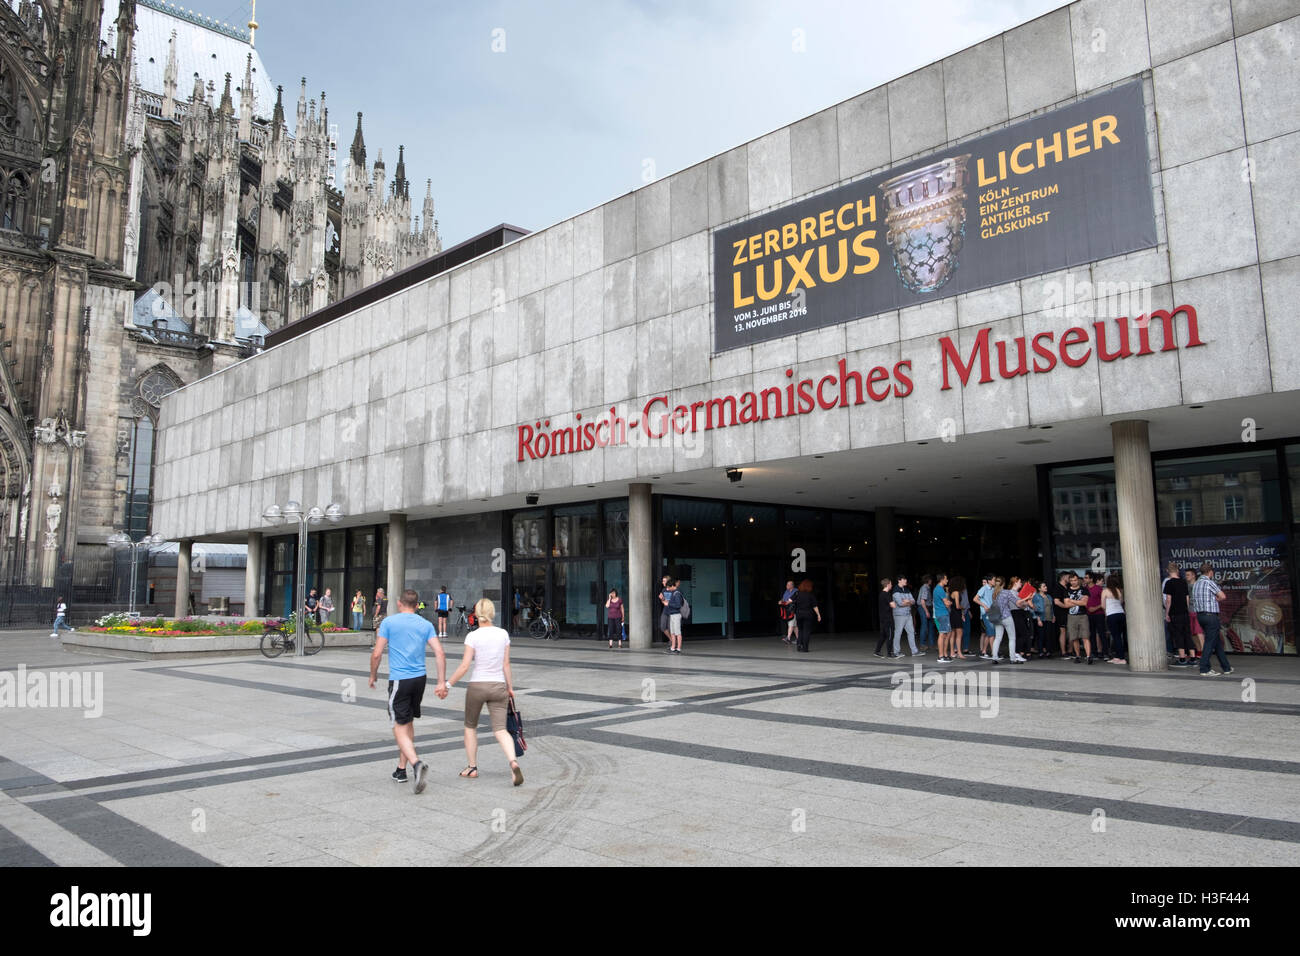 Students having a guided tour of the Romisch-Germanisches Museum, Cologne, Germany. - Stock Image